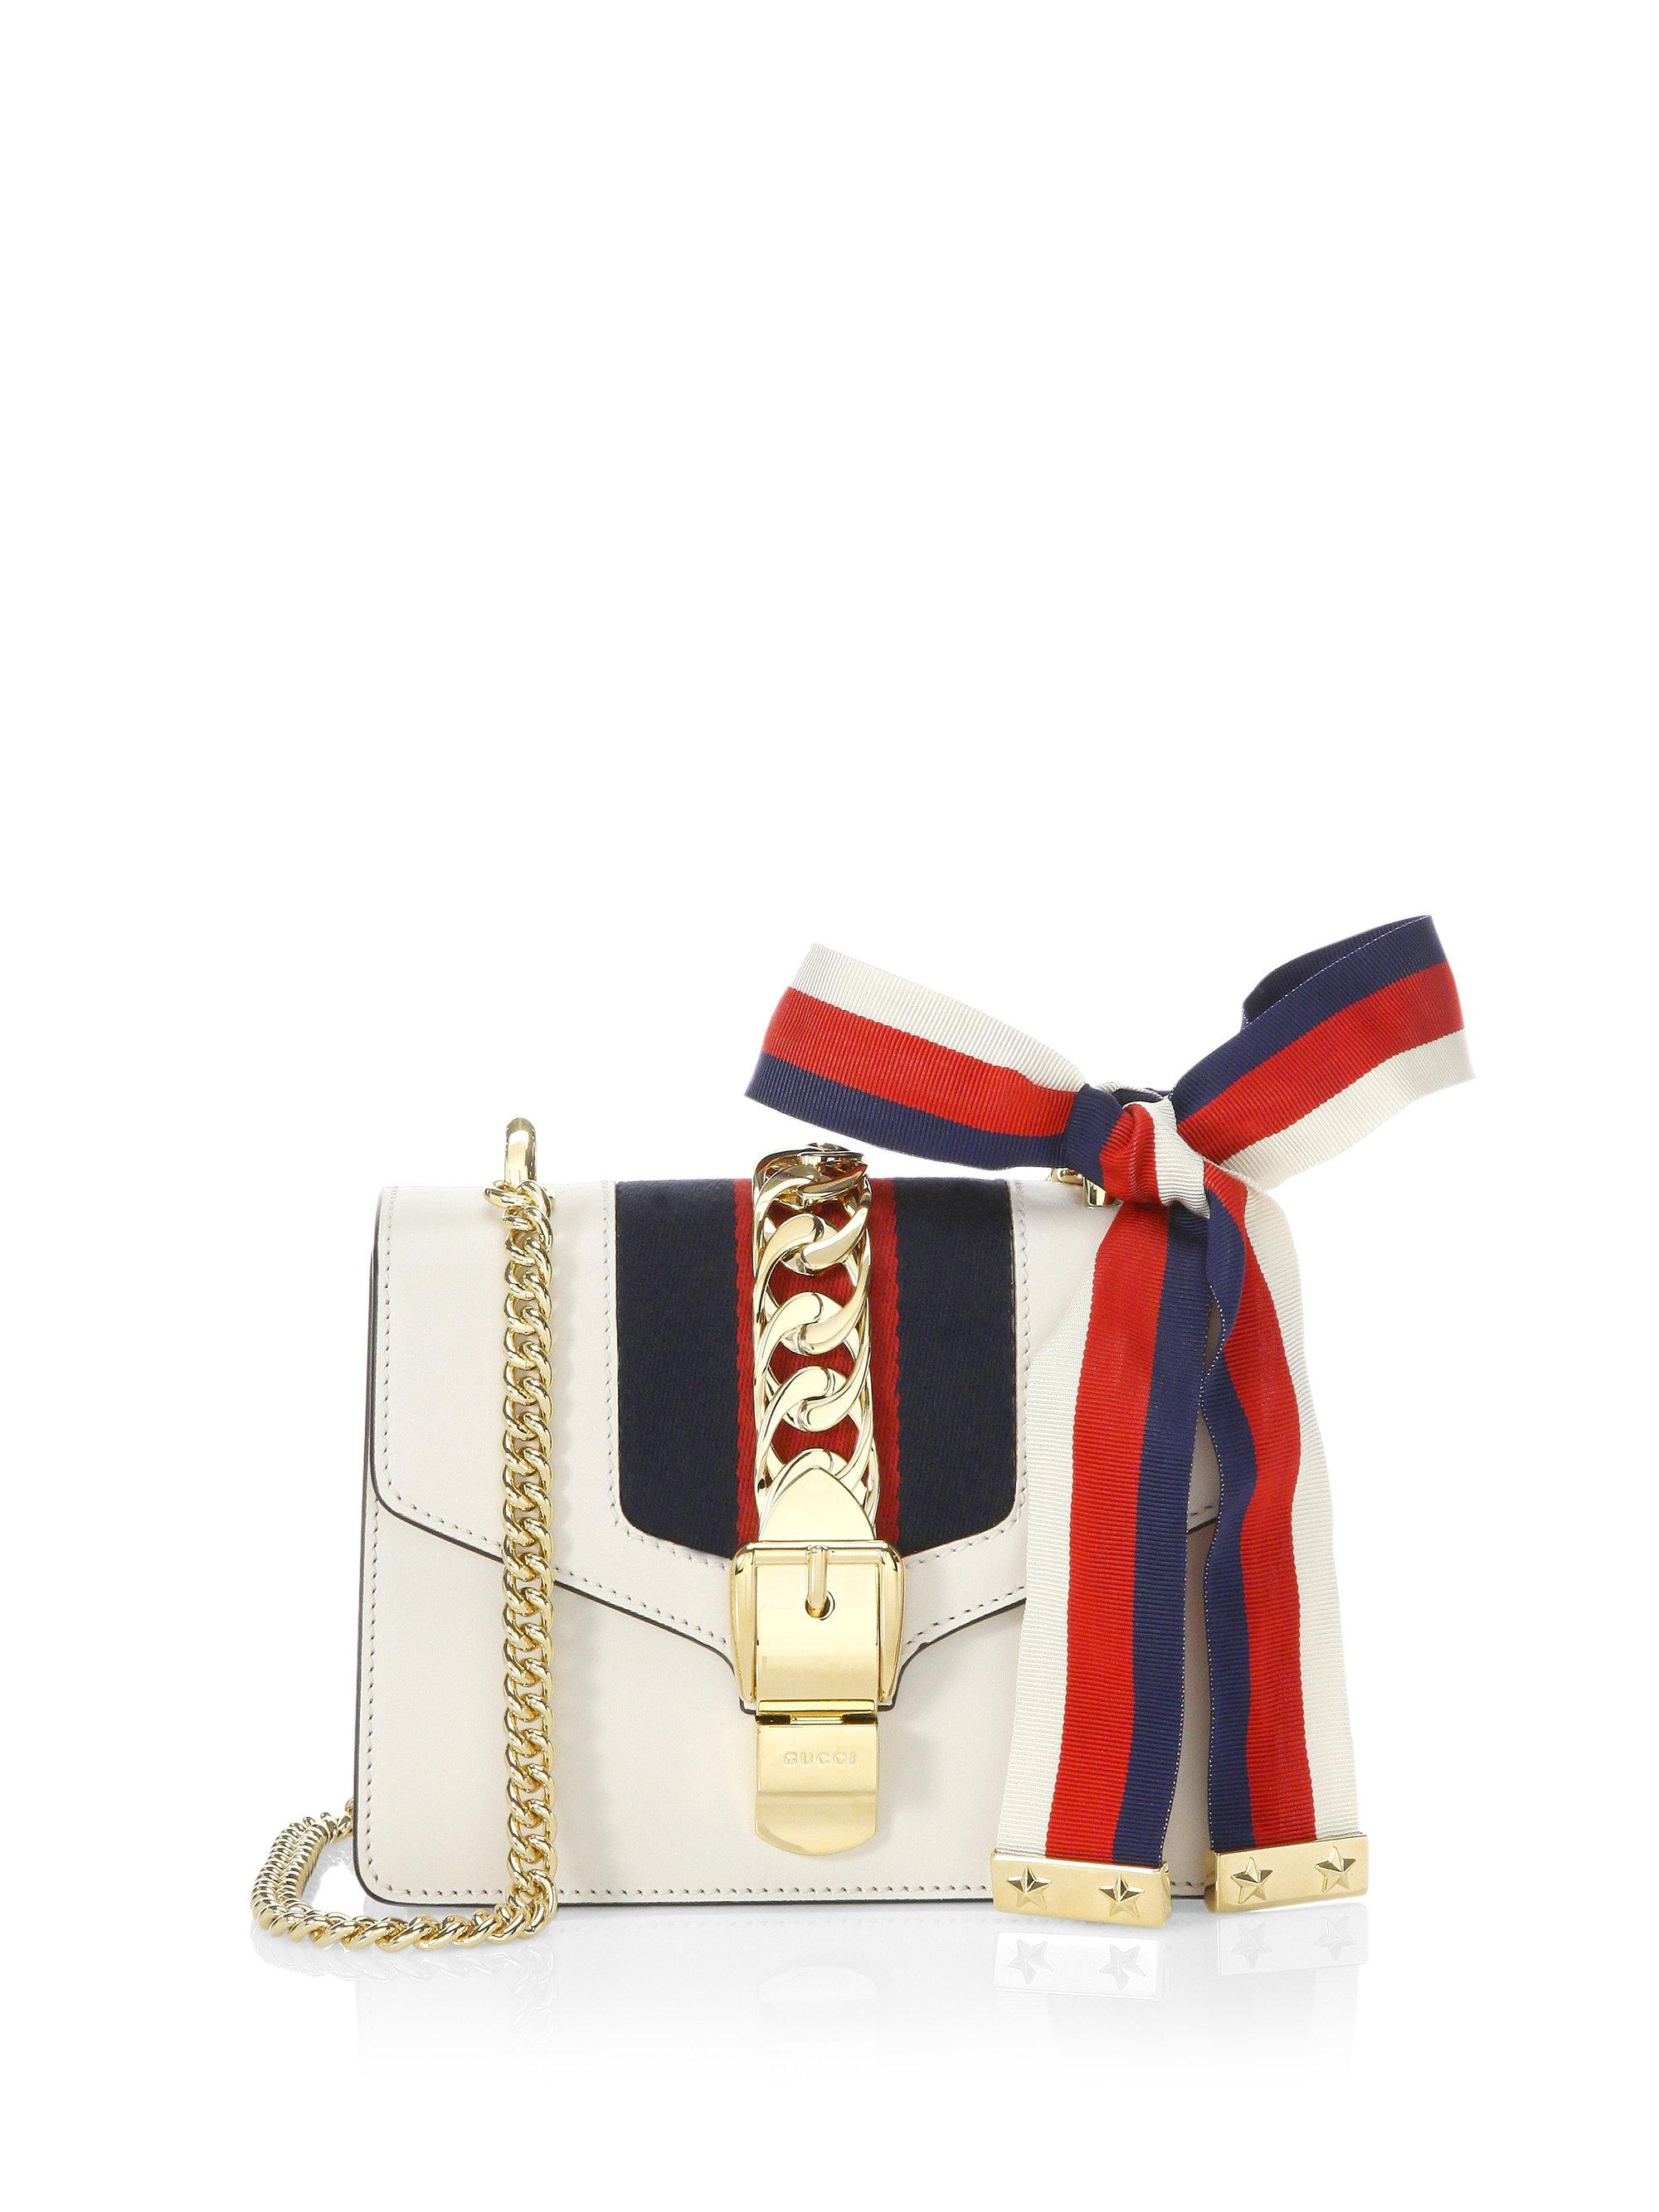 4620ca932610 Gucci Women's Sylvie Leather Mini Chain Bag - Red in Red - Lyst